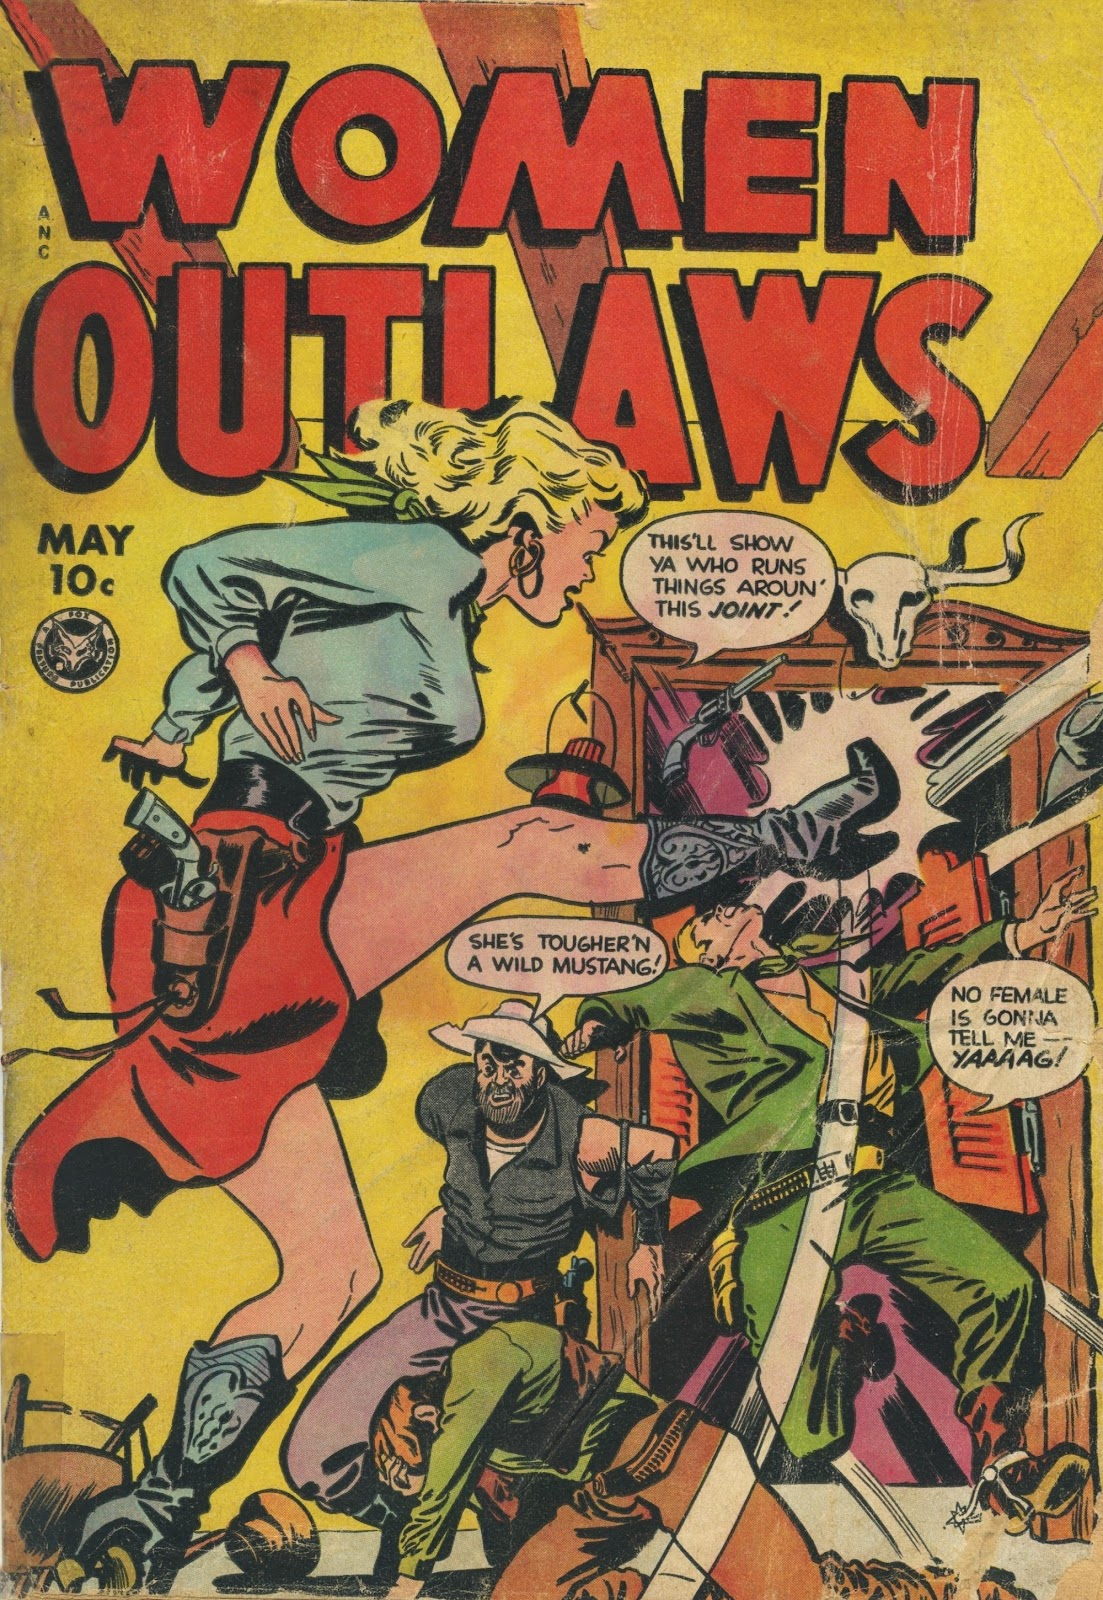 Read online Women Outlaws comic -  Issue #6 - 1